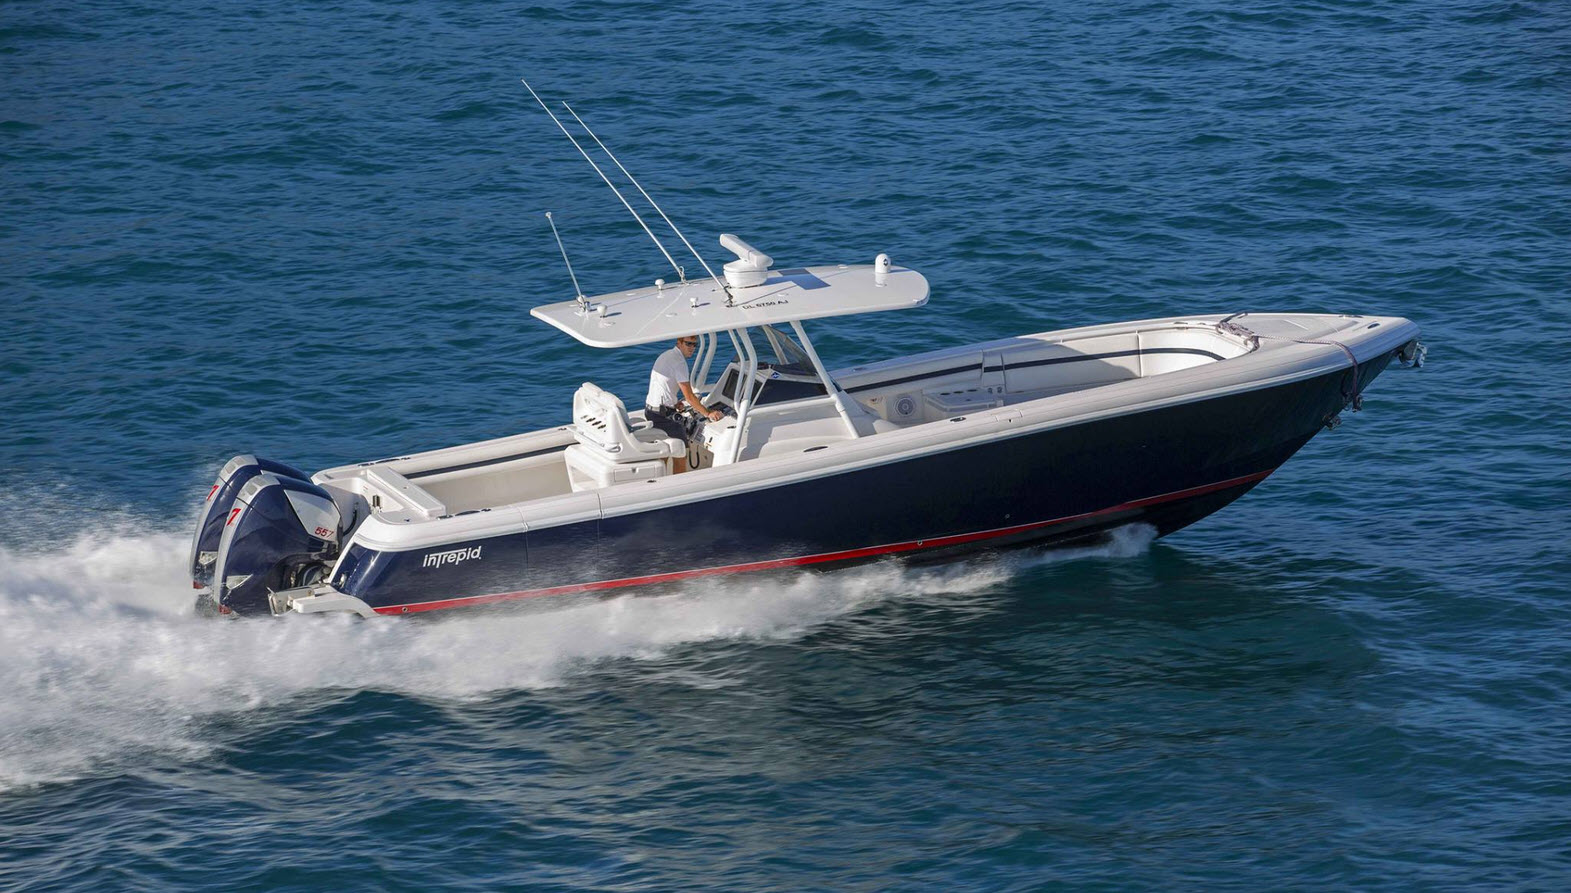 Used Intrepid Boats For Sale | United Yacht Sales